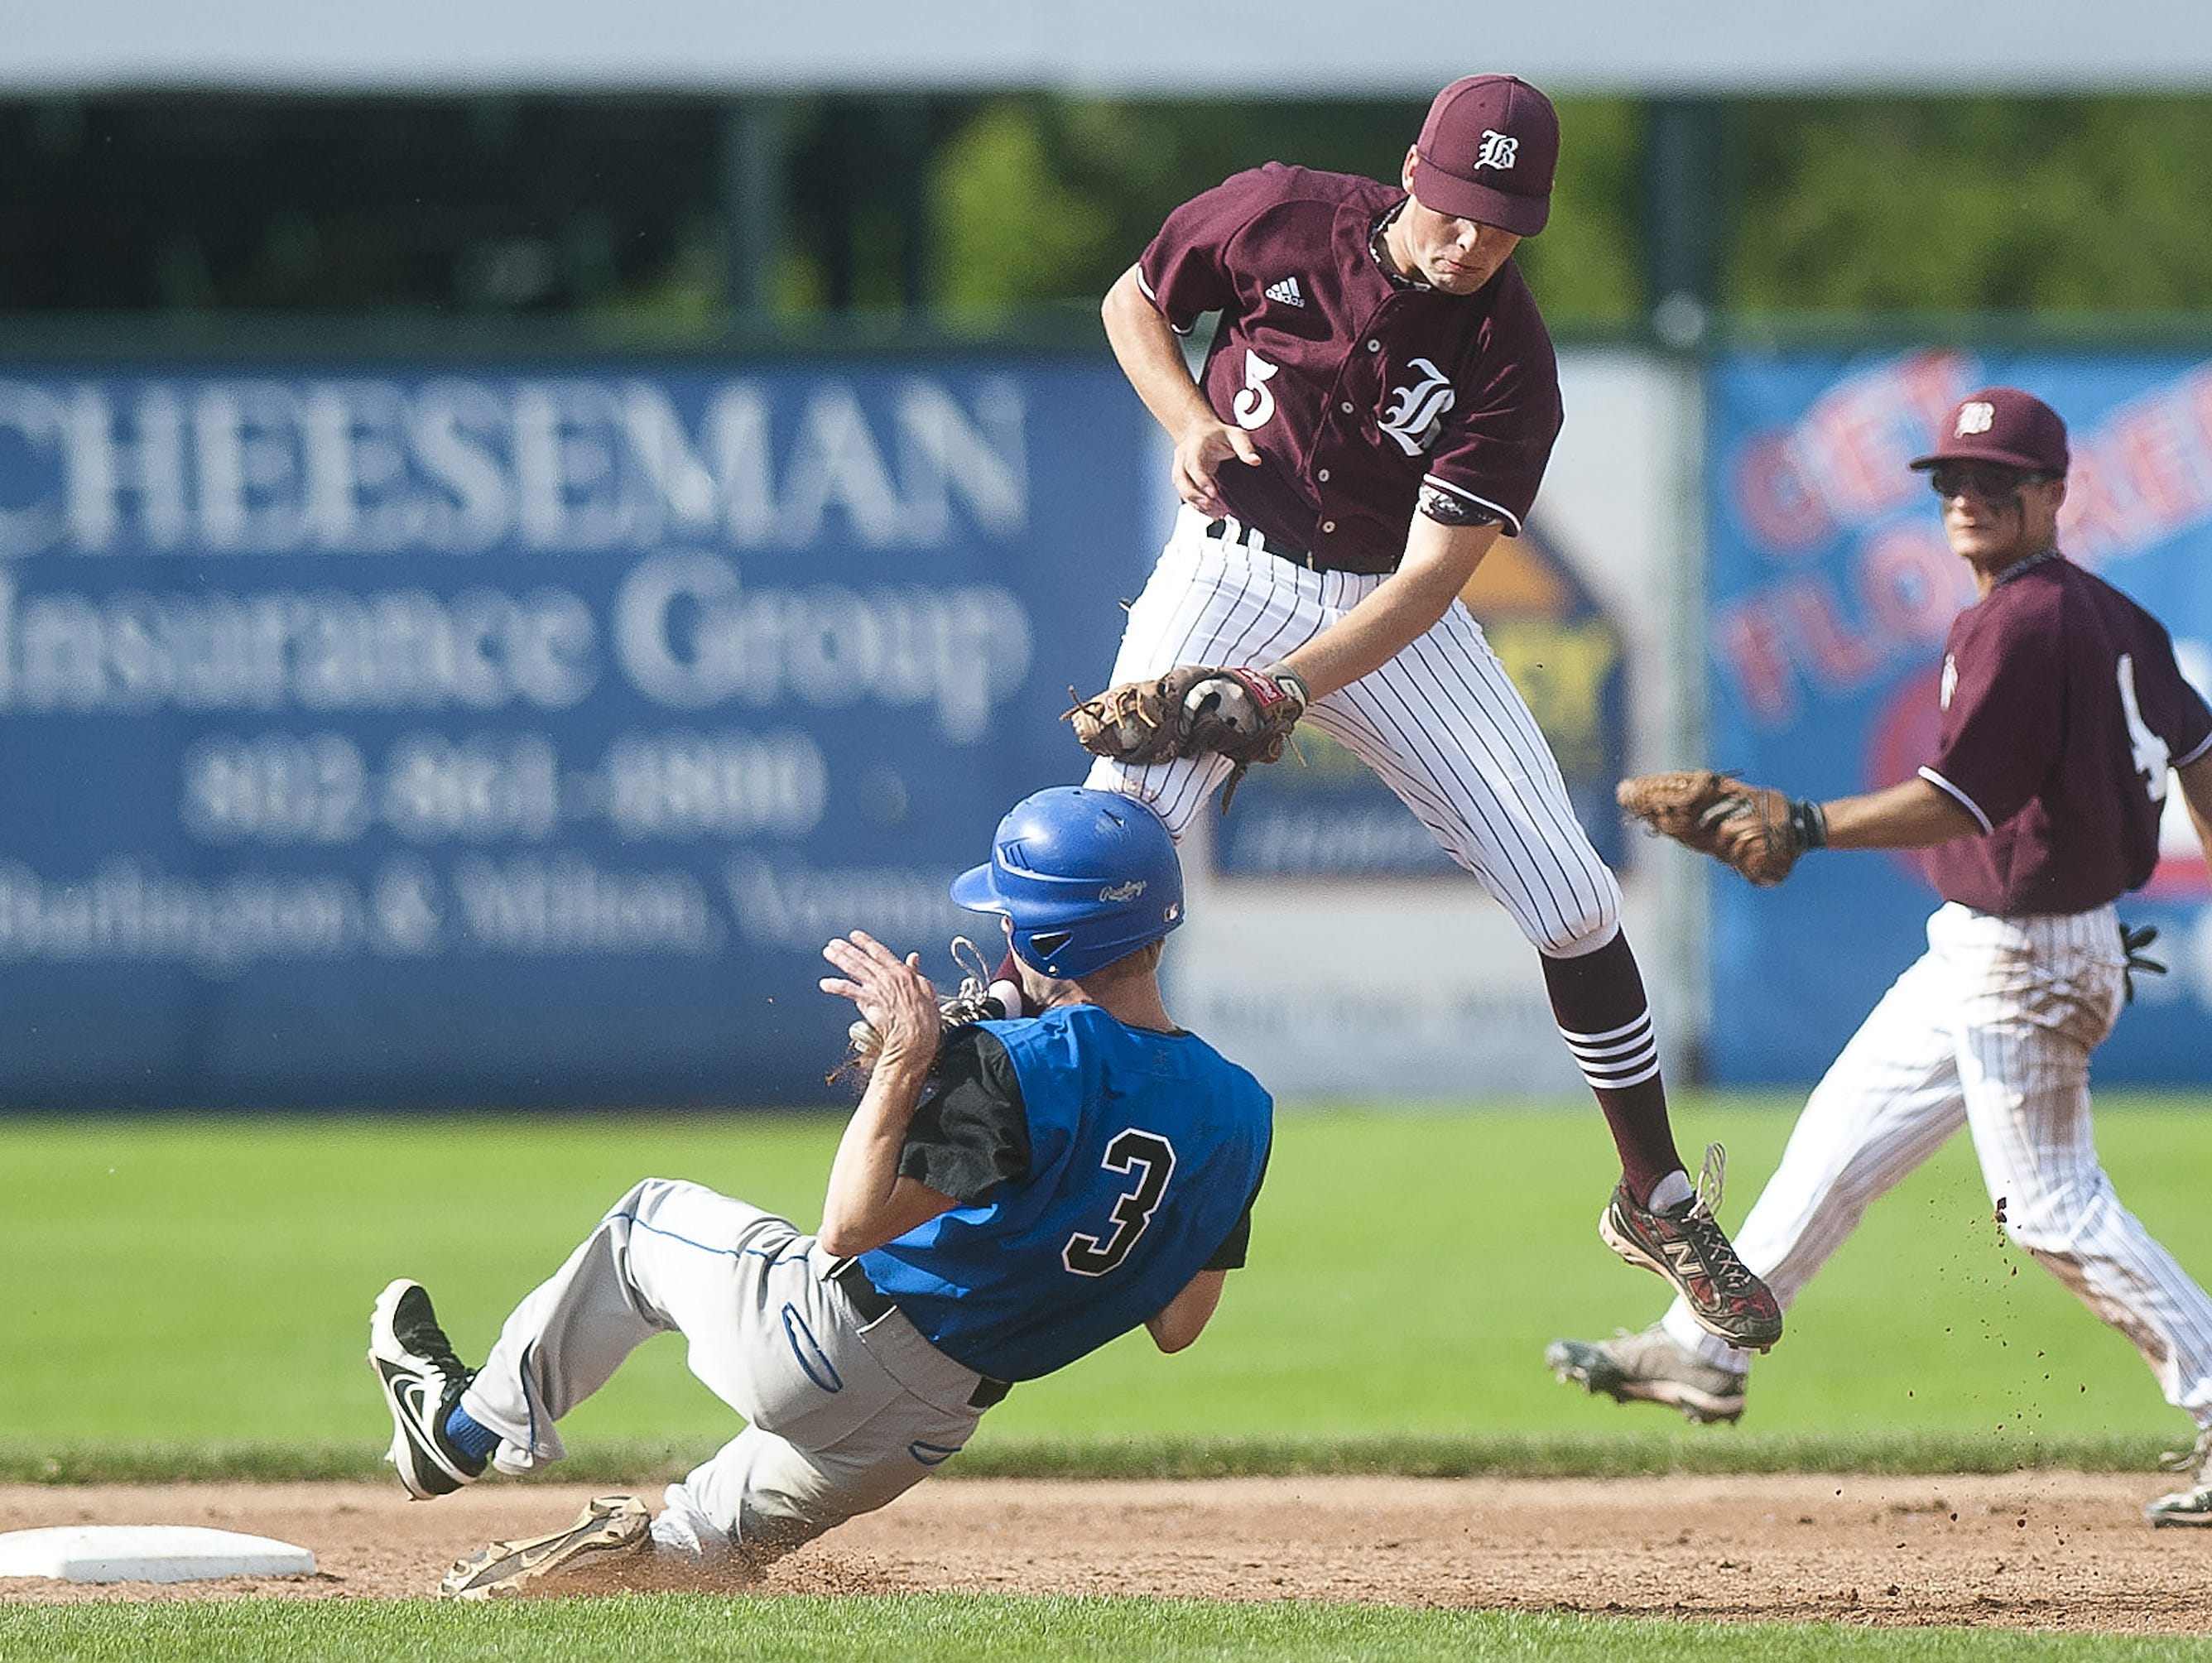 Williamstown's Curtis Gauthier, left, slides into second base under the tag by BFA-Fairfax shortstop Jared Quick during the Division III state championship game on Saturday at Centennial Field.